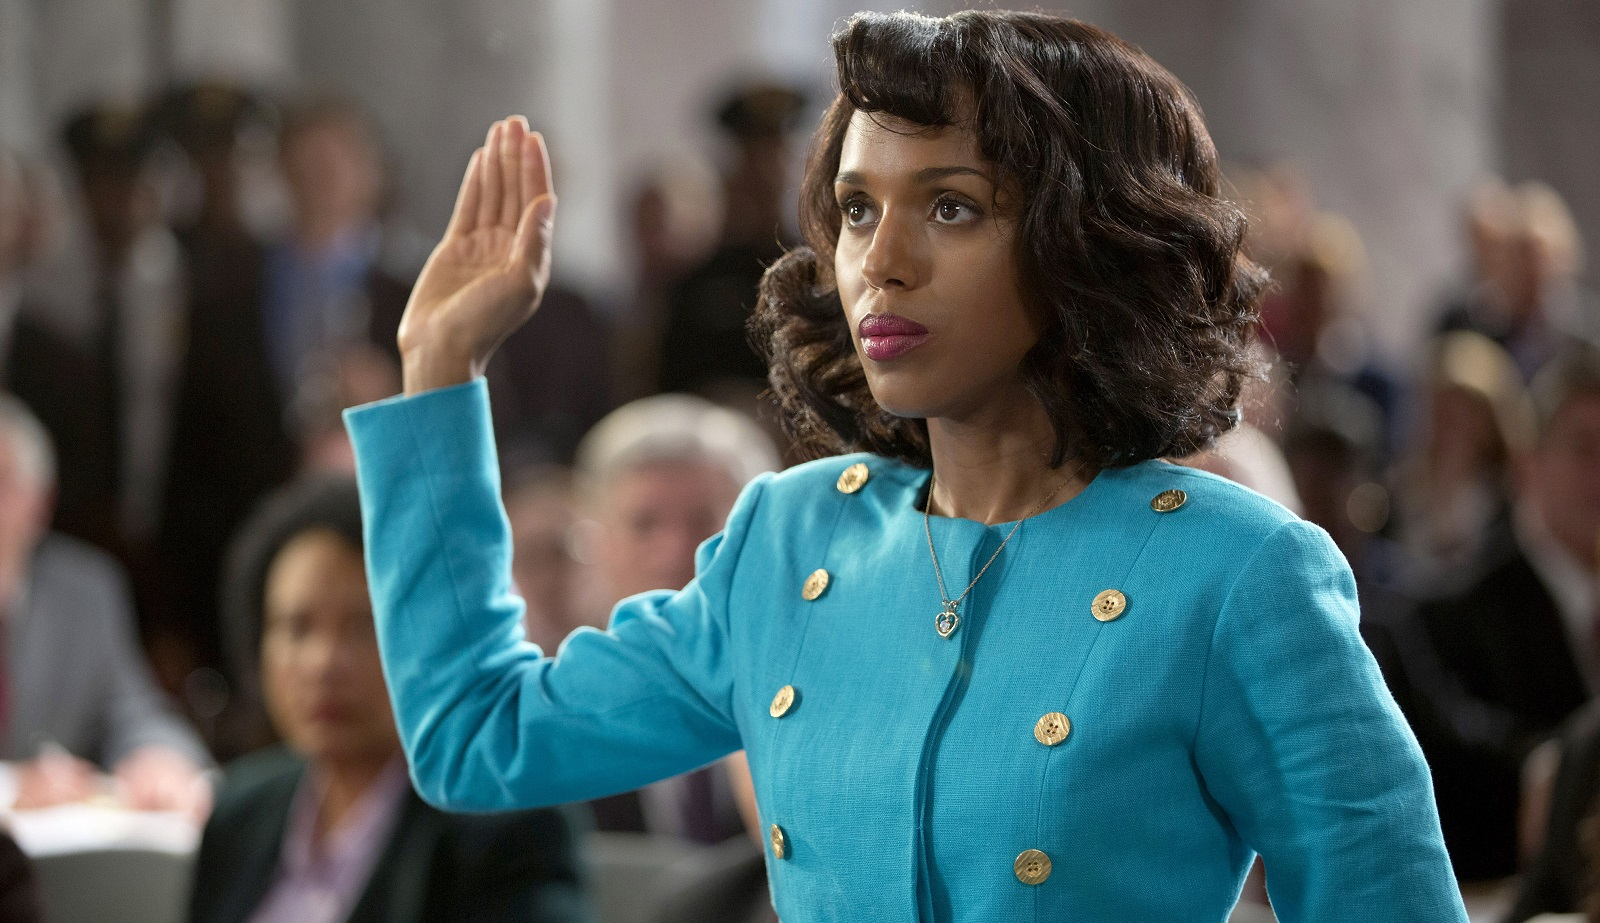 Kerry Washington plays Anita Hill in the HBO movie 'Confirmation,' which dramatizes Clarence Thomas' Supreme Court confirmation hearings in 1991. Hill had accused Thomas of sexual harassment in the workplace. (Frank Masi, HBO)